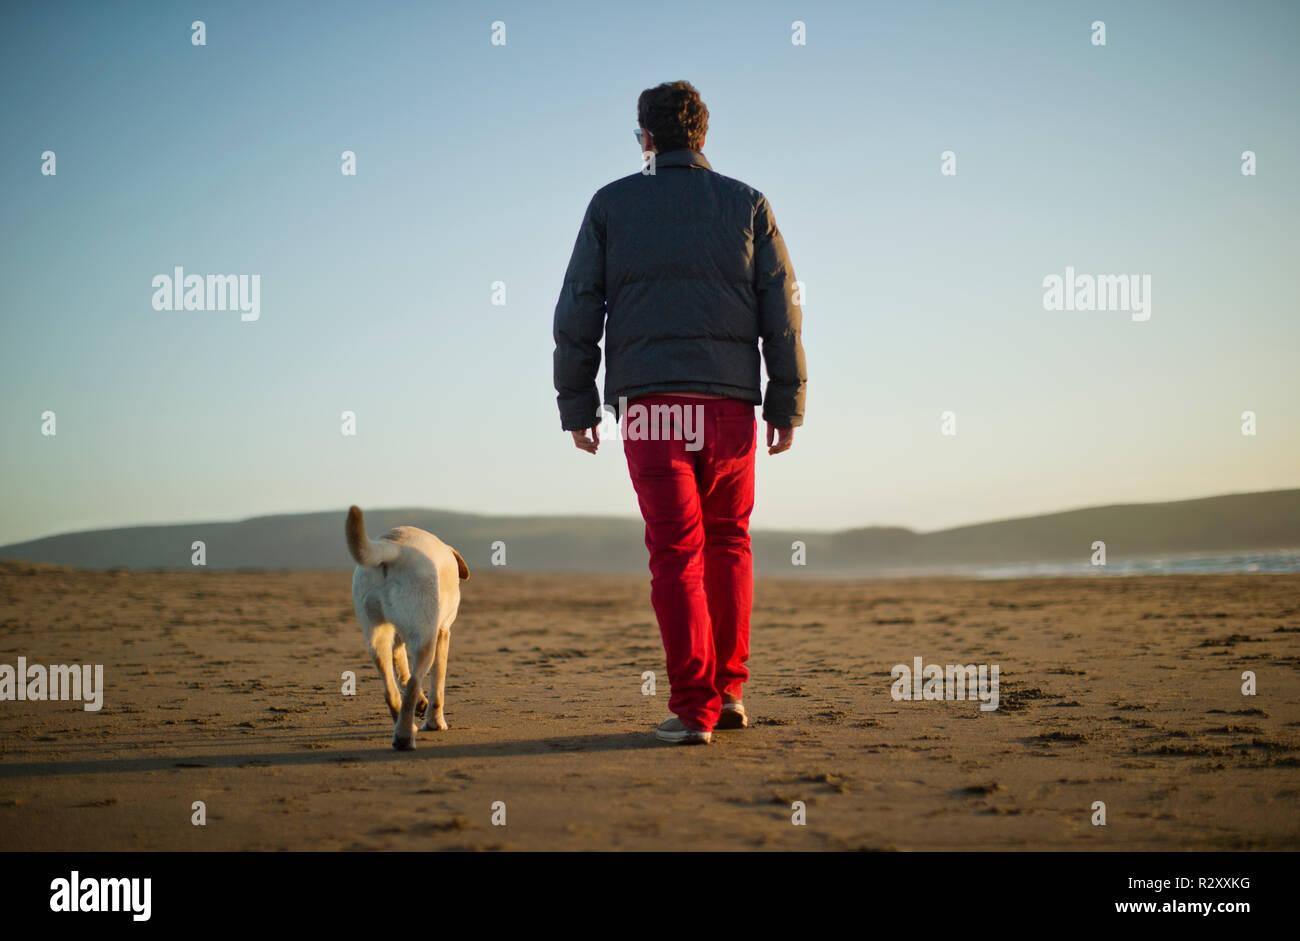 Teenage boy walking on beach with his dog. - Stock Image